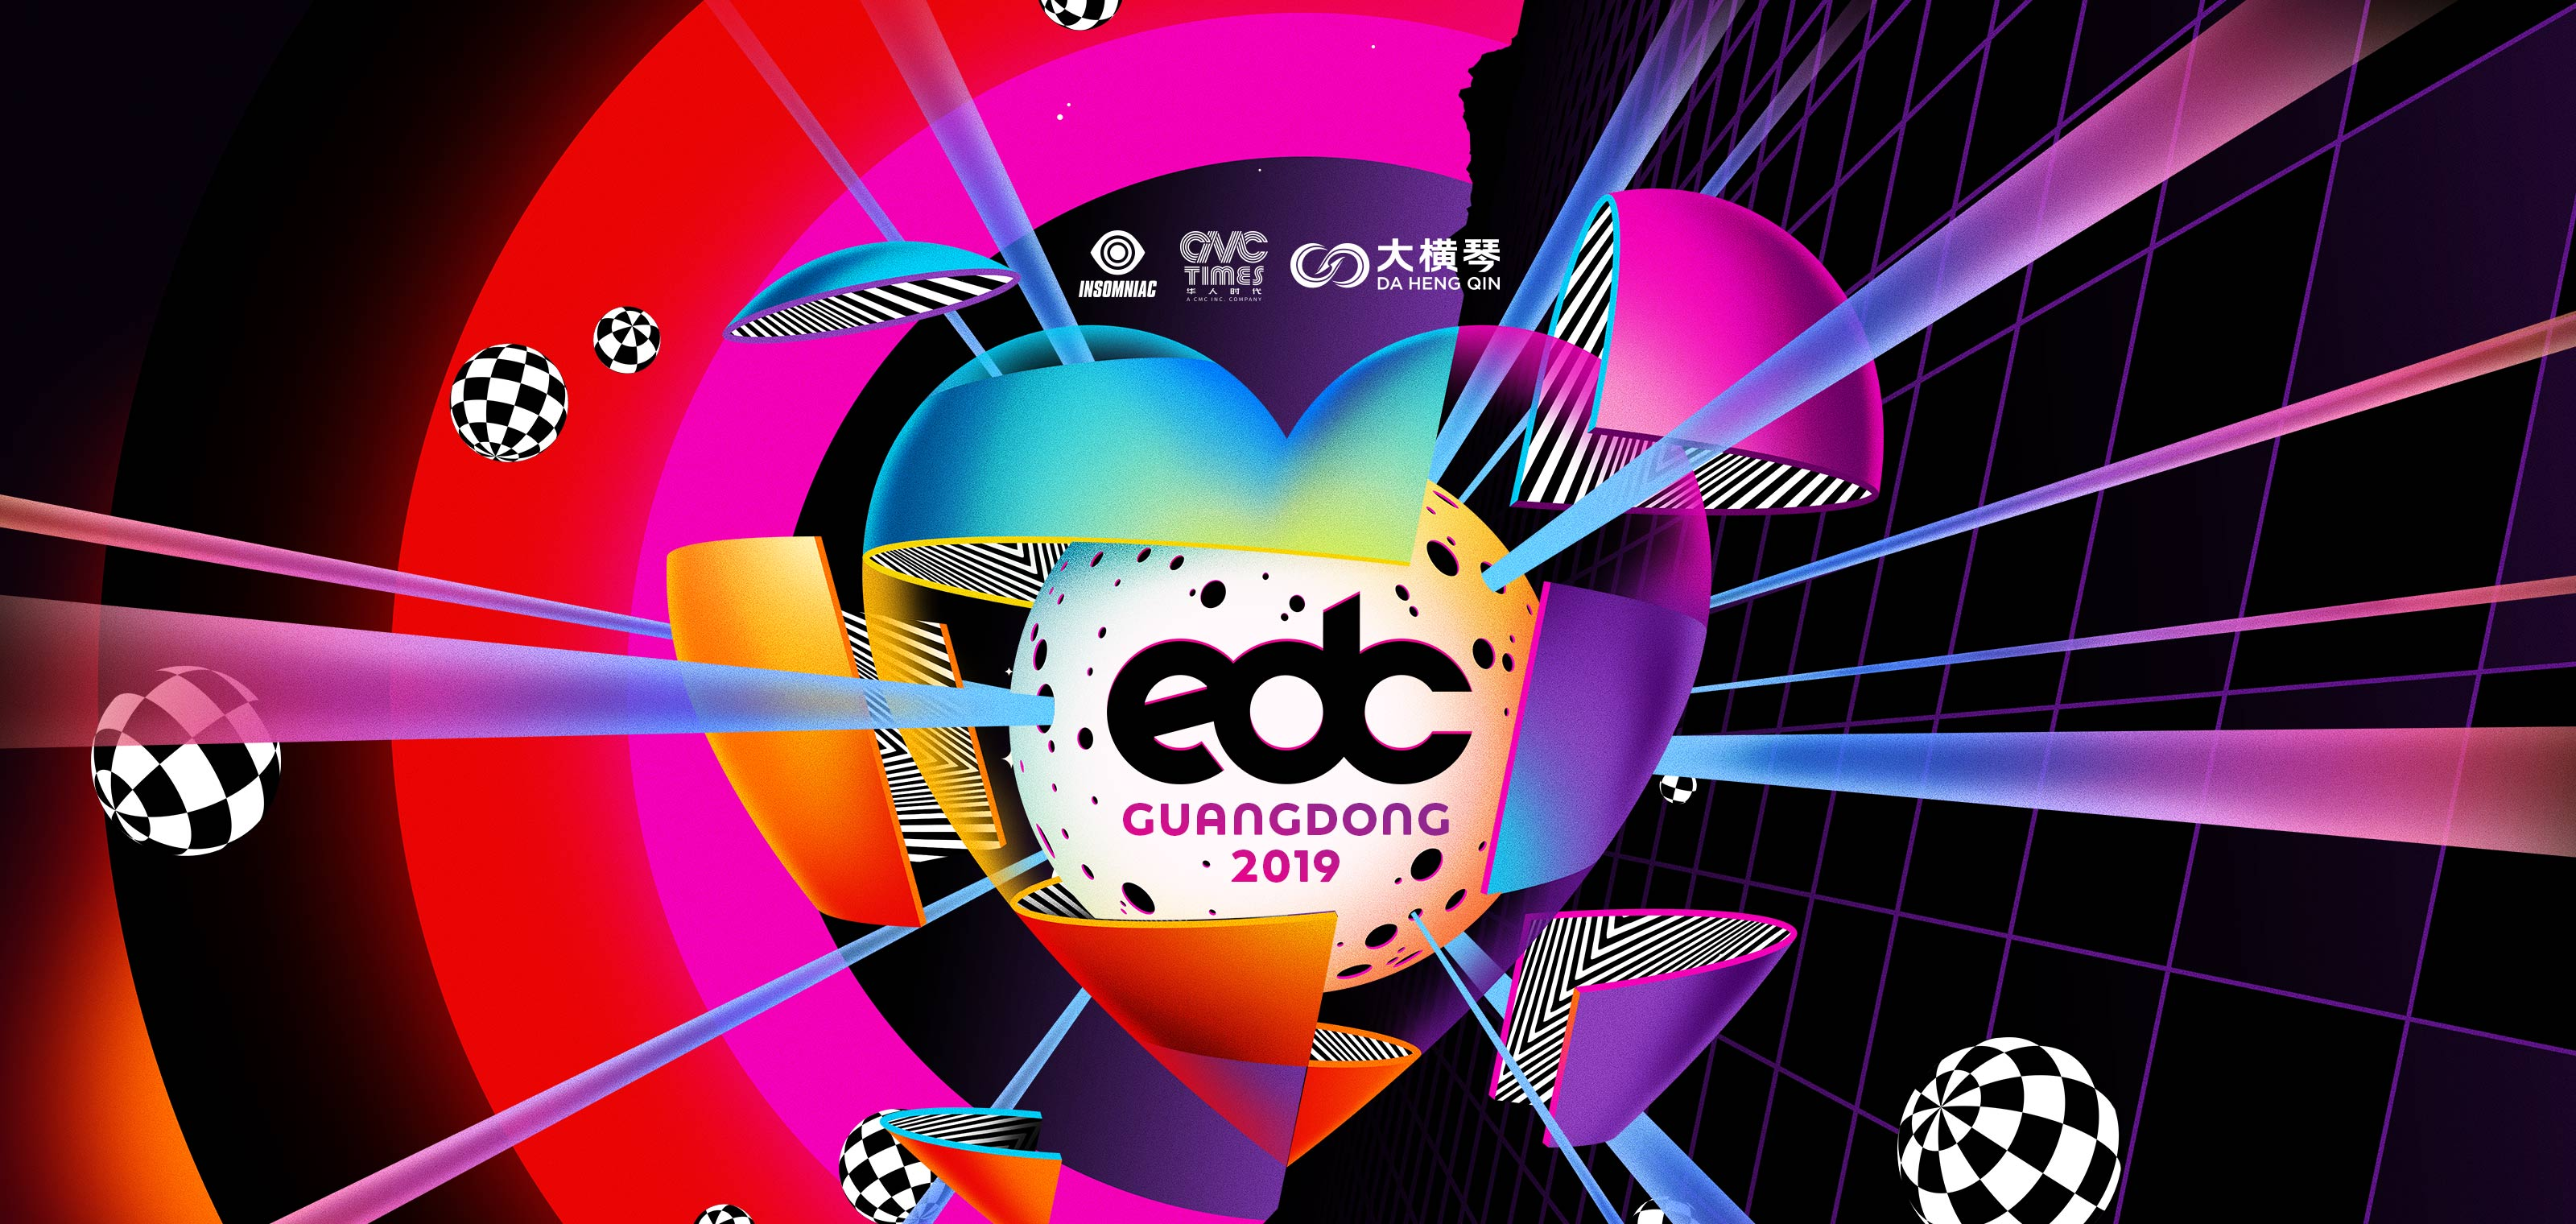 EDC Guangdong Returns with Lineup Phase 1